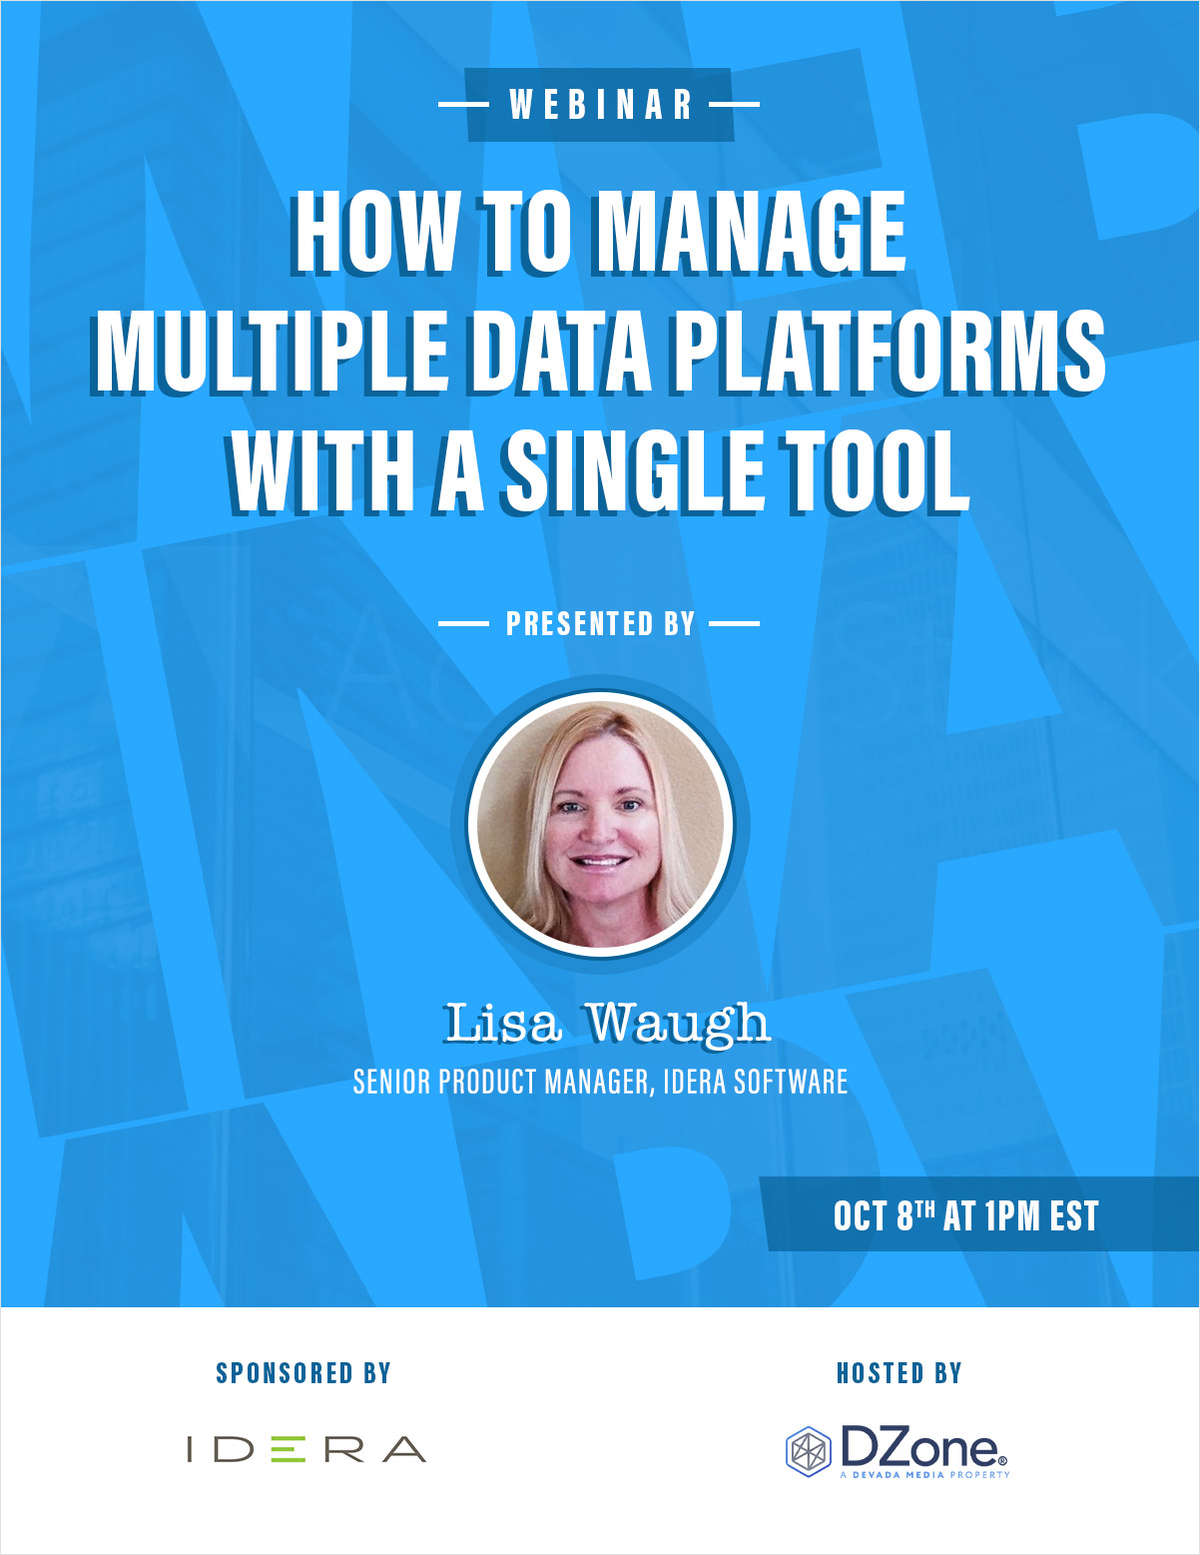 How to Manage Multiple Data Platforms with a Single Tool